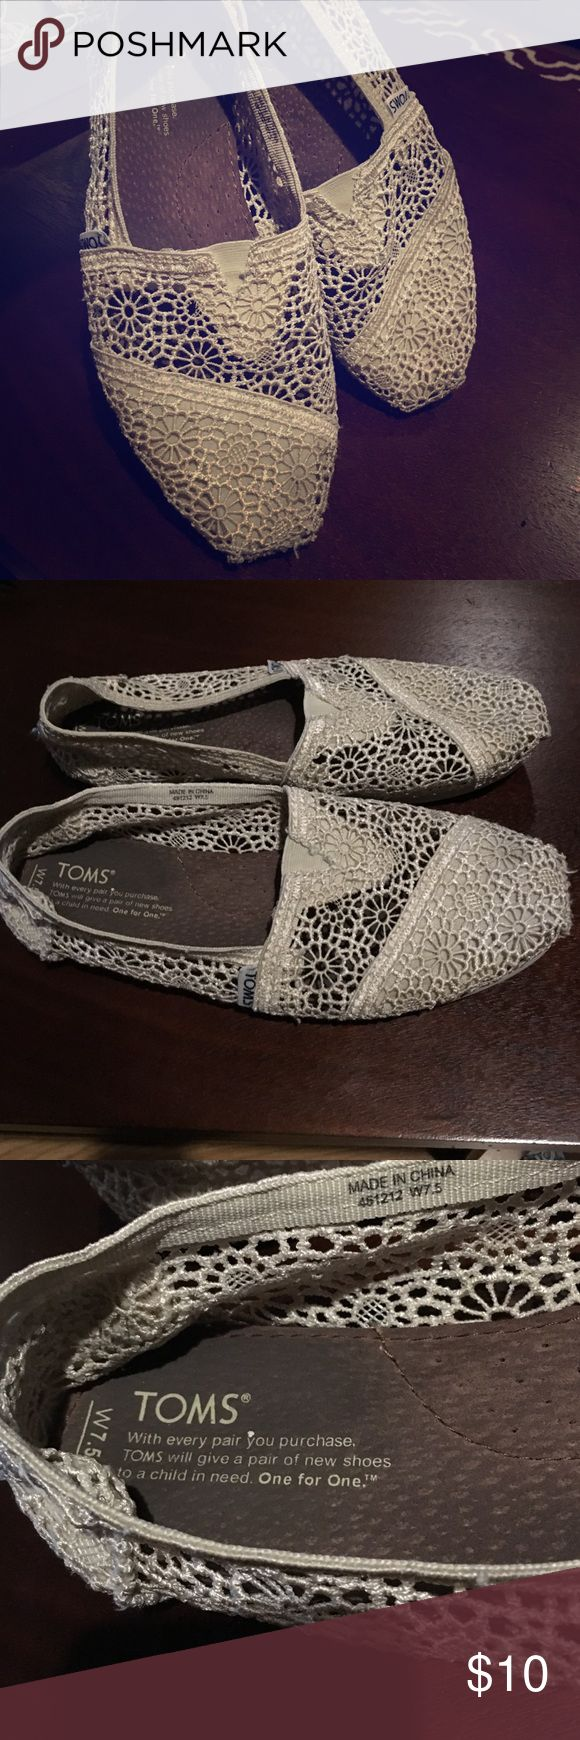 Cream Lace Toms Lace and Floral designs, white/cream Toms • Used, but washed • TOMS Shoes